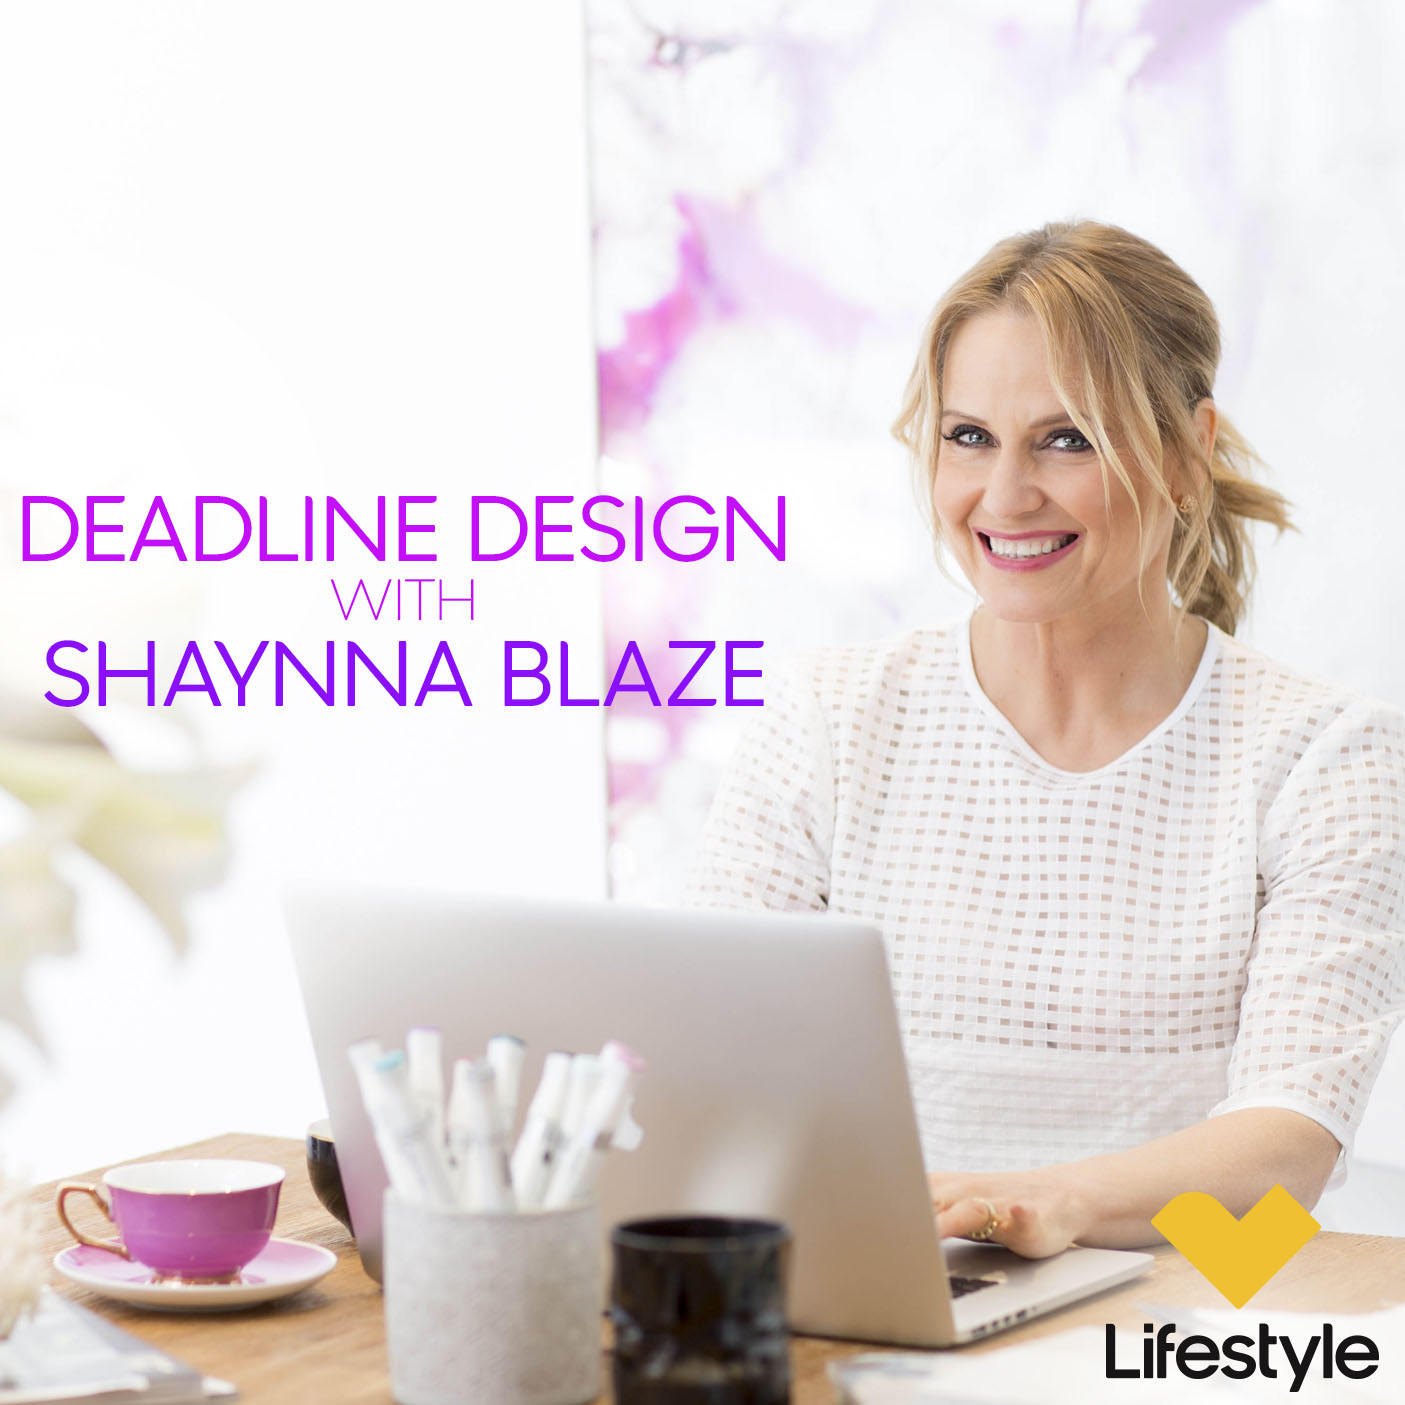 Shaynna Blaze features Renovator Store on LifestyleAU's Deadline Design